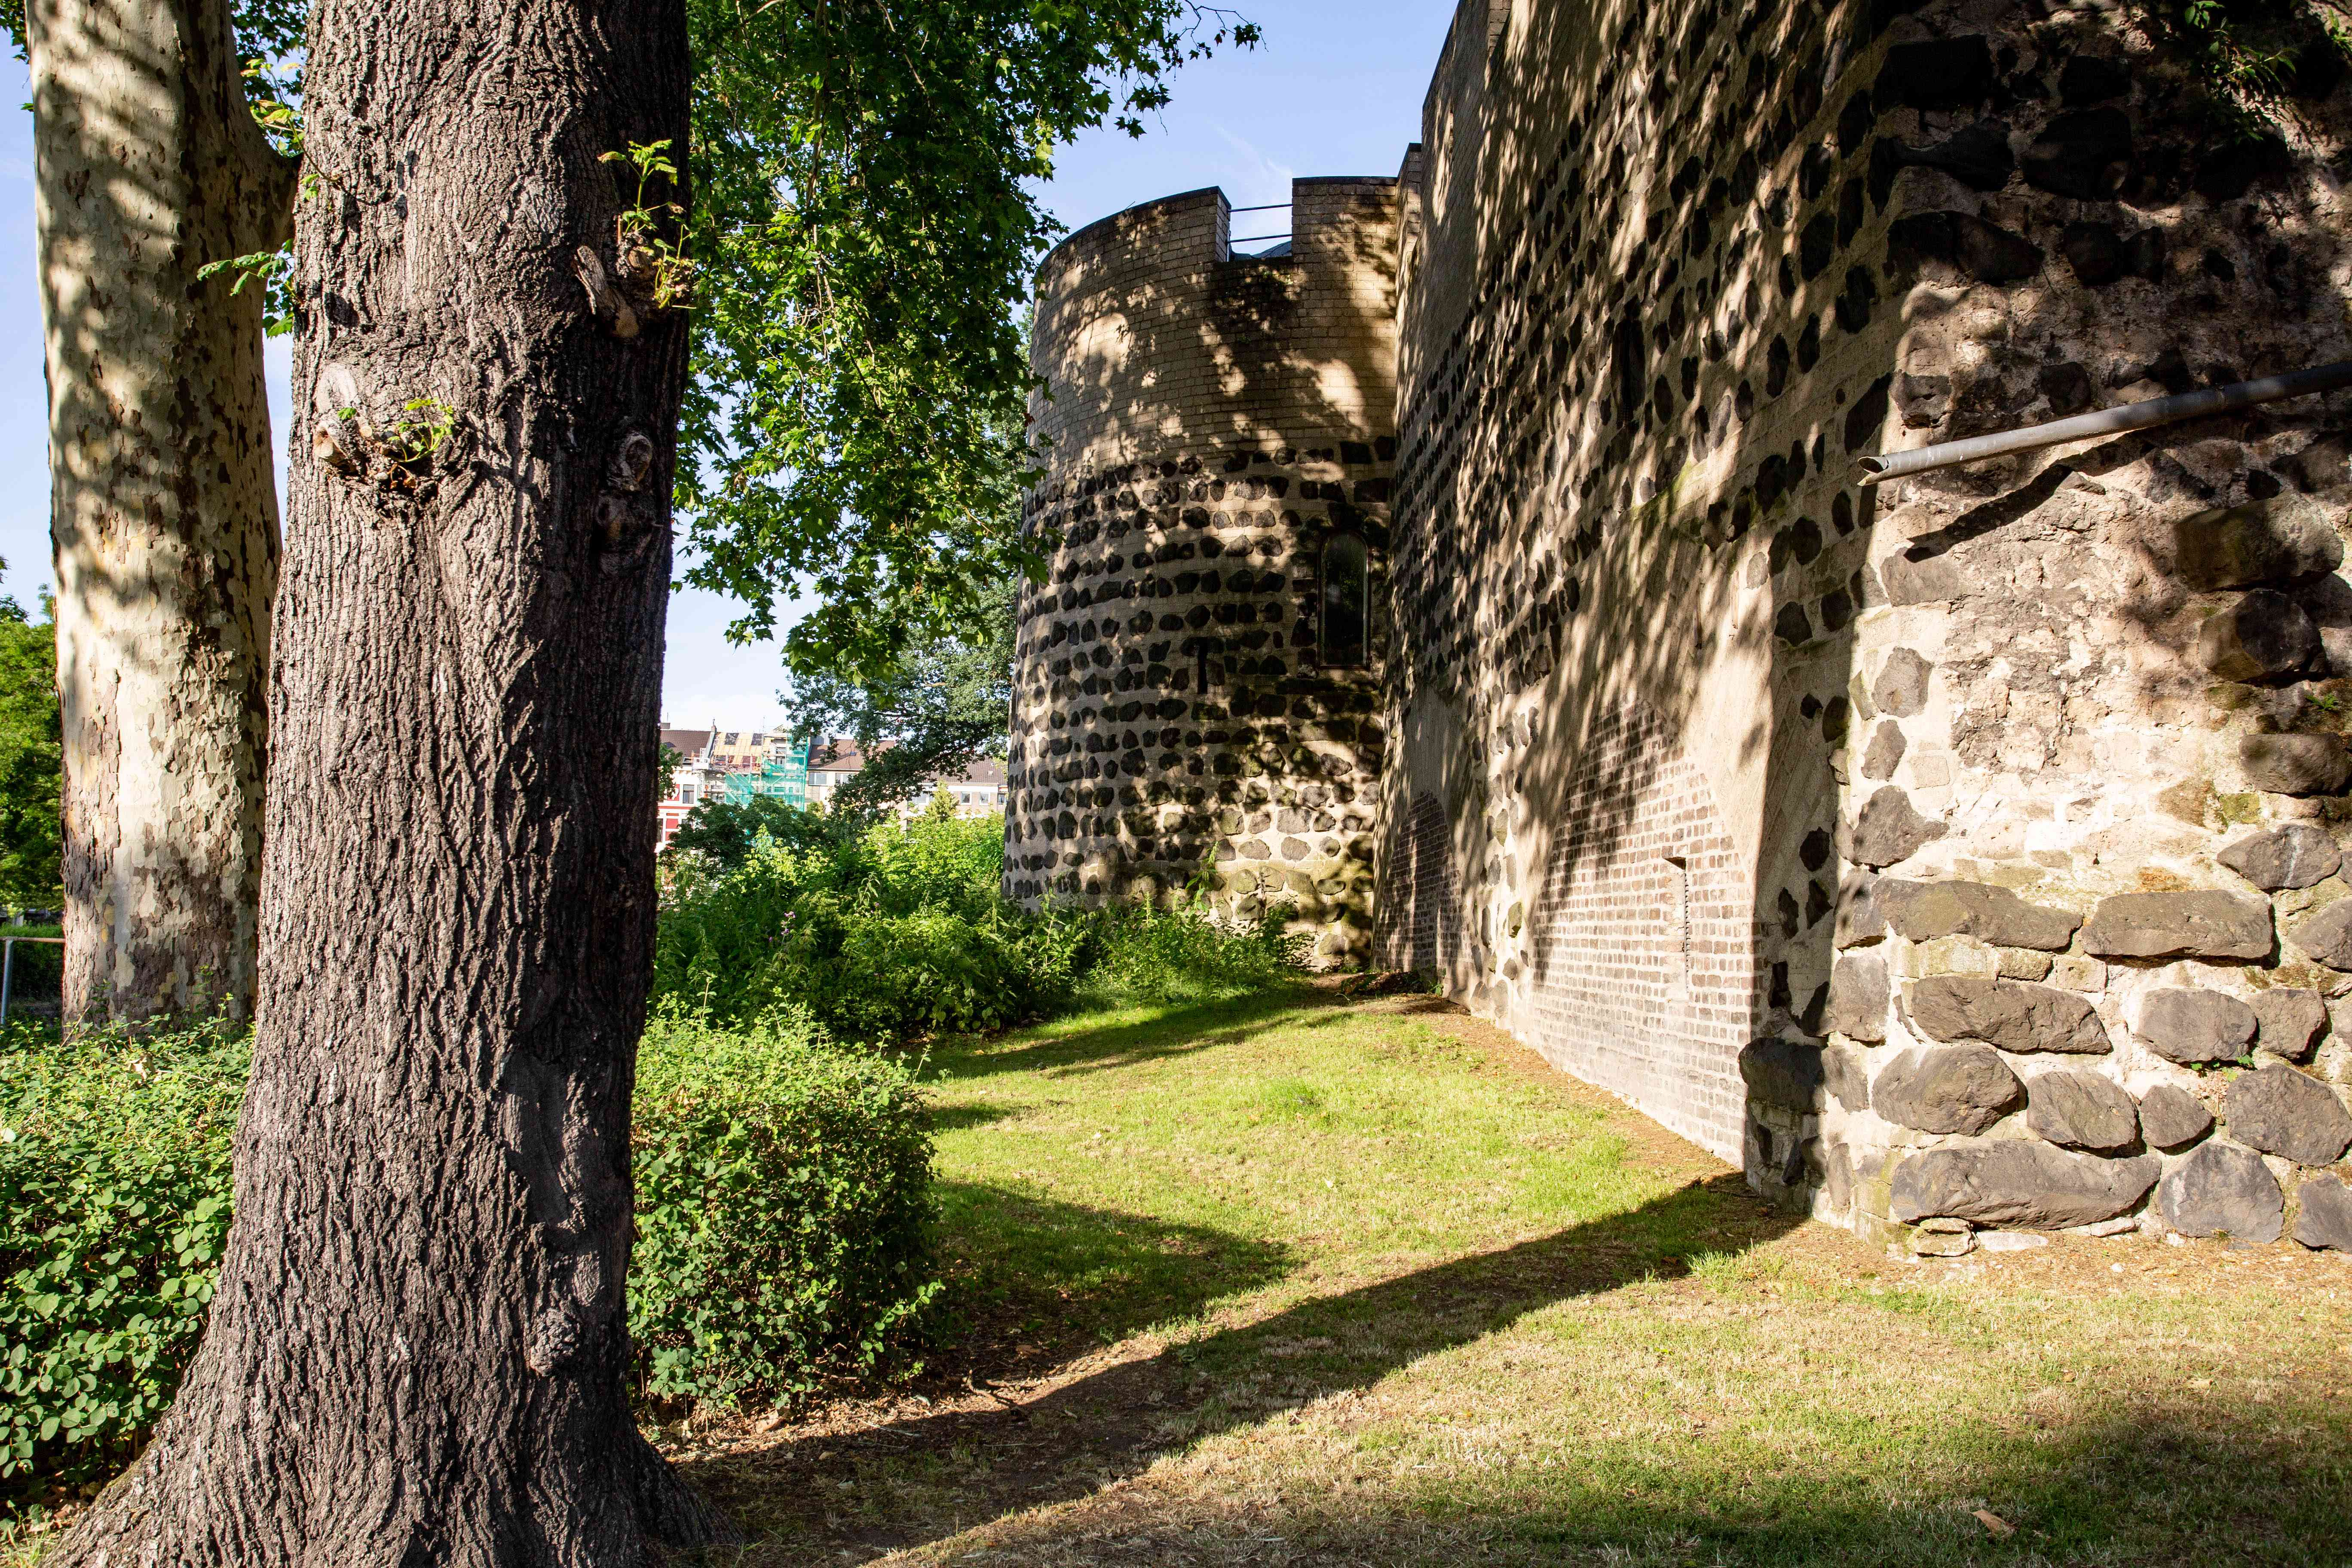 The medieval walls in cologne with trees growing beside it